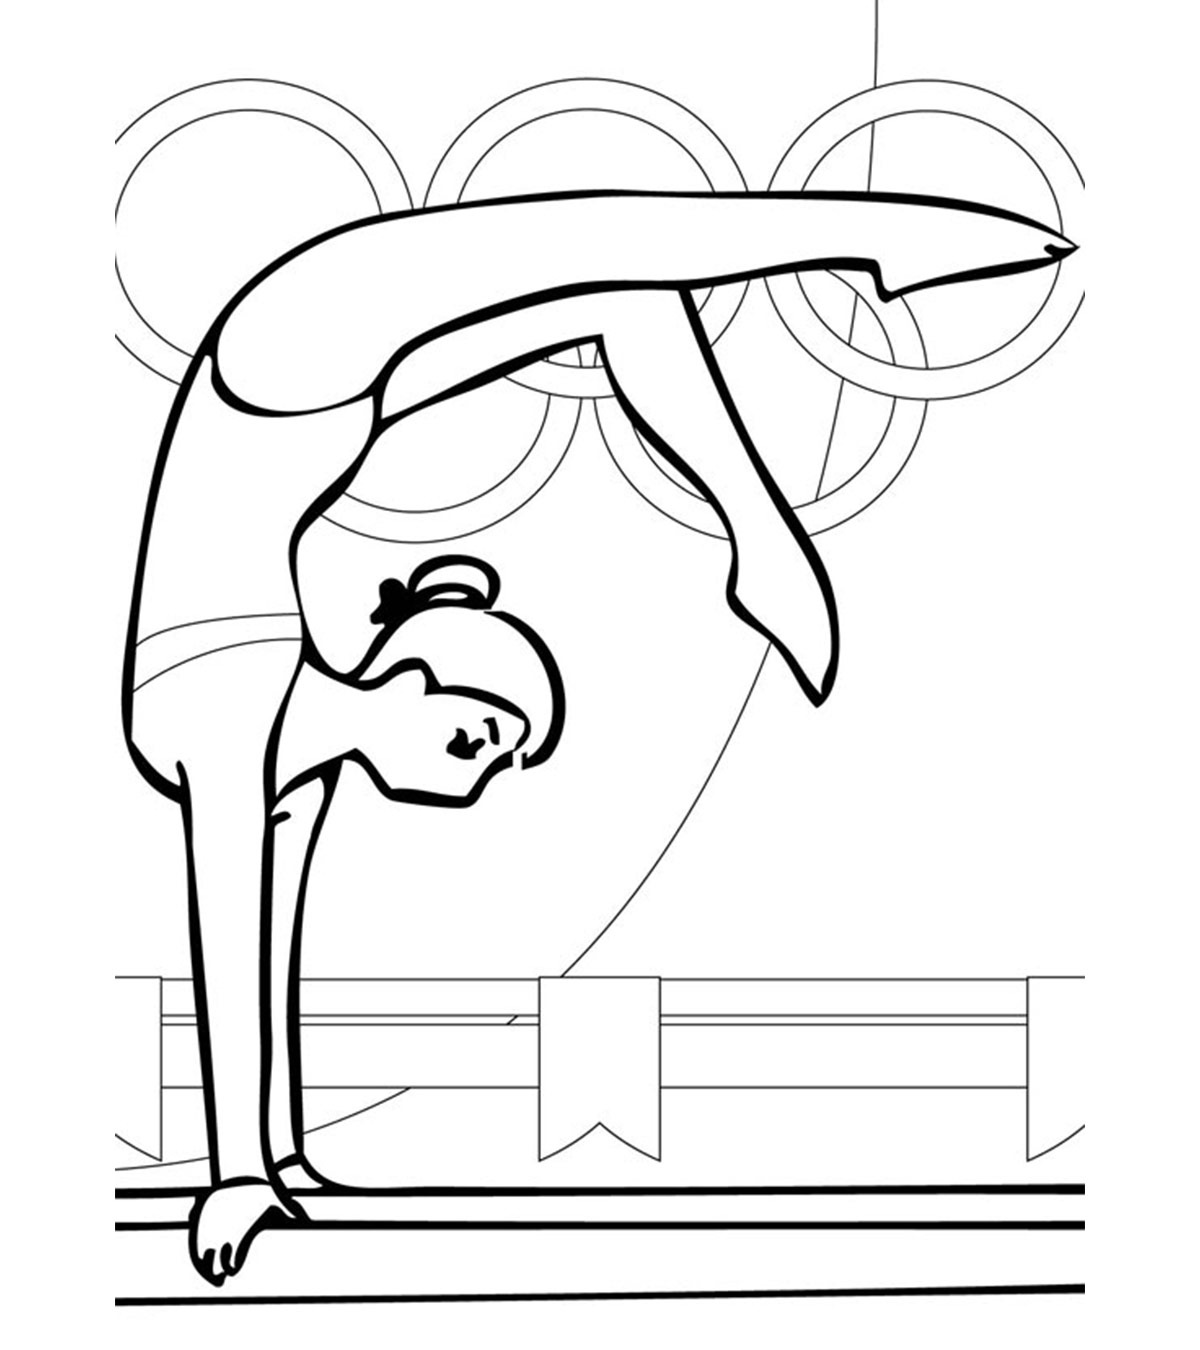 Pin on Exercise Coloring Pages | 1350x1200